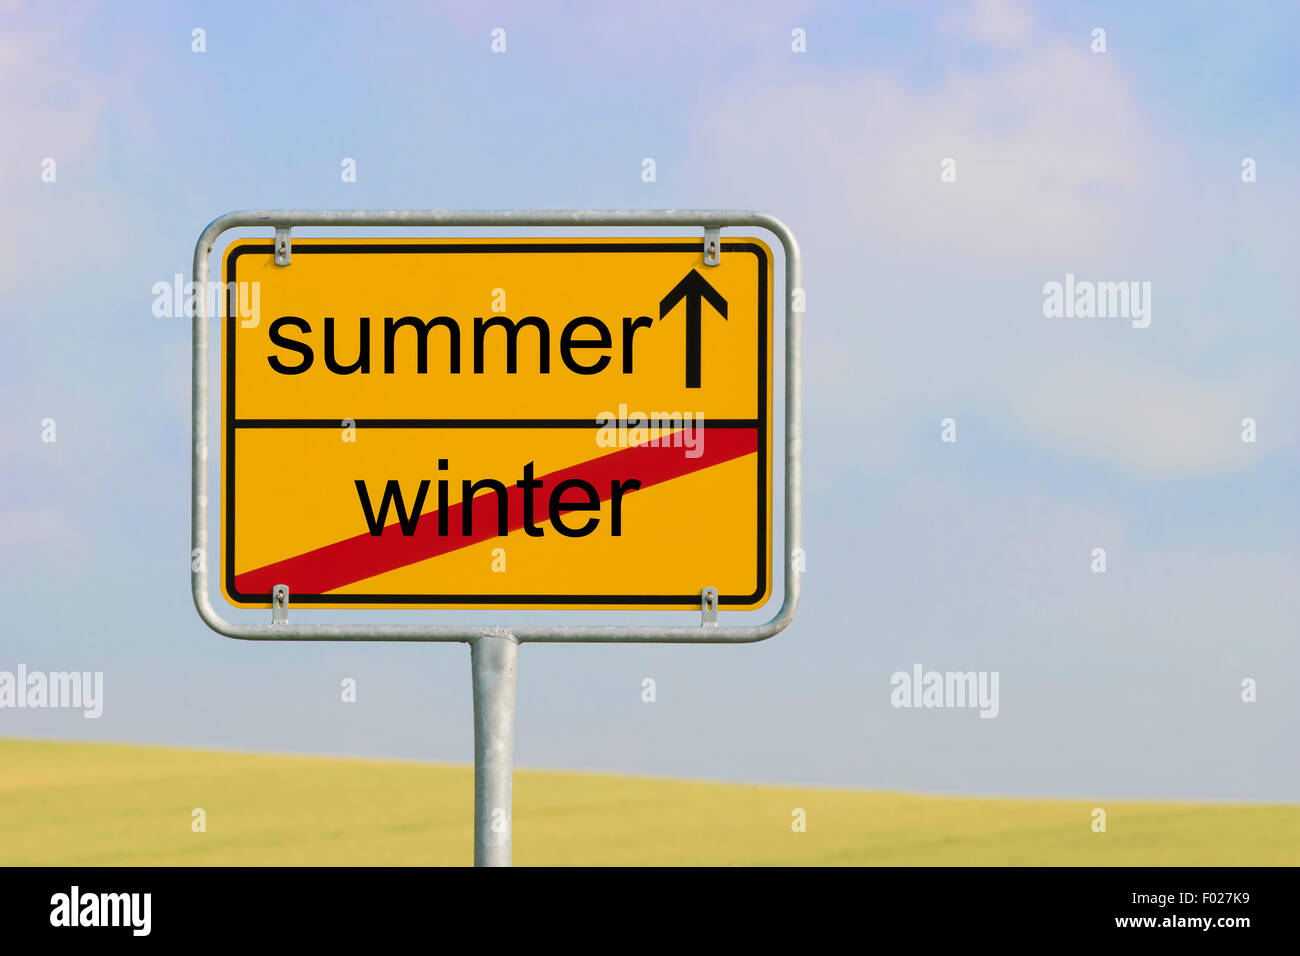 Yellow town sign with text 'winter summer' - Stock Image